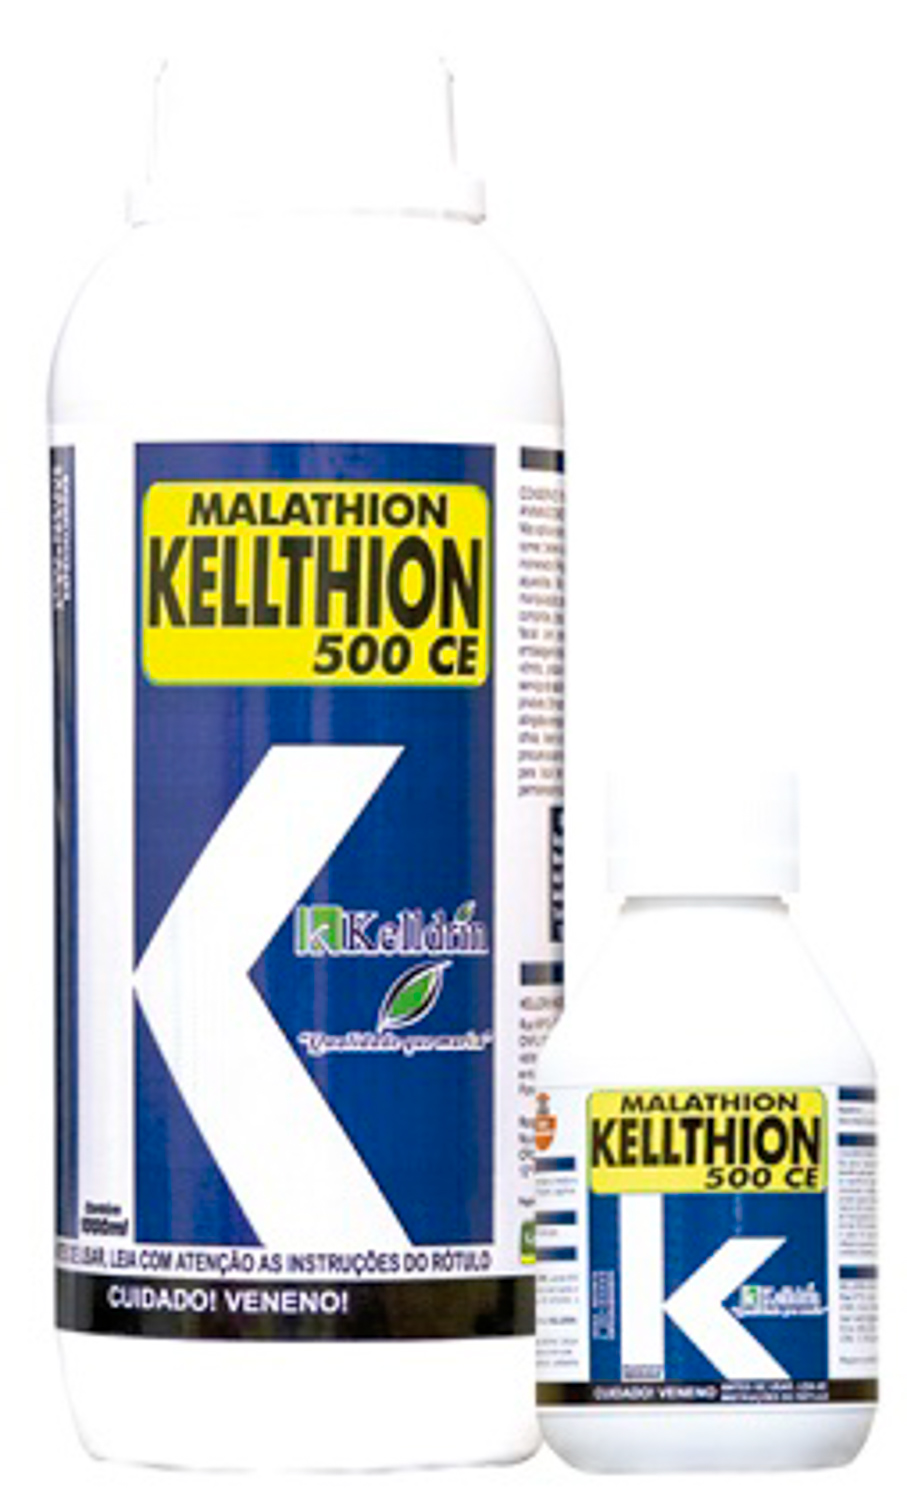 MALATHION KELLTHION 500CE 1000ML - KELLDRIN